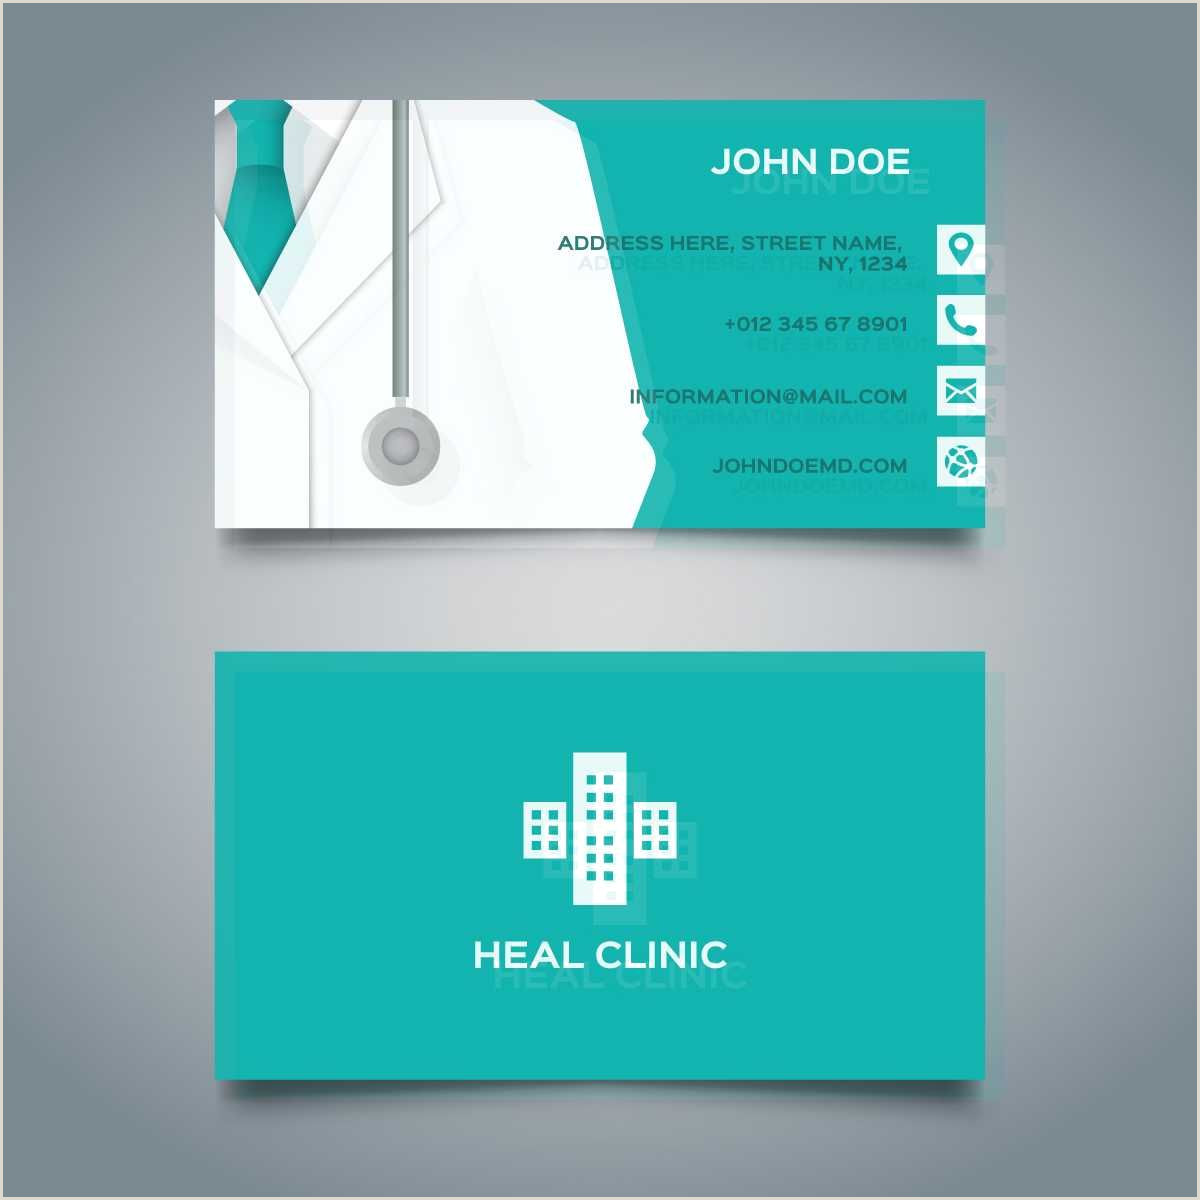 Business Card Design Examples Blue Medical Card Free